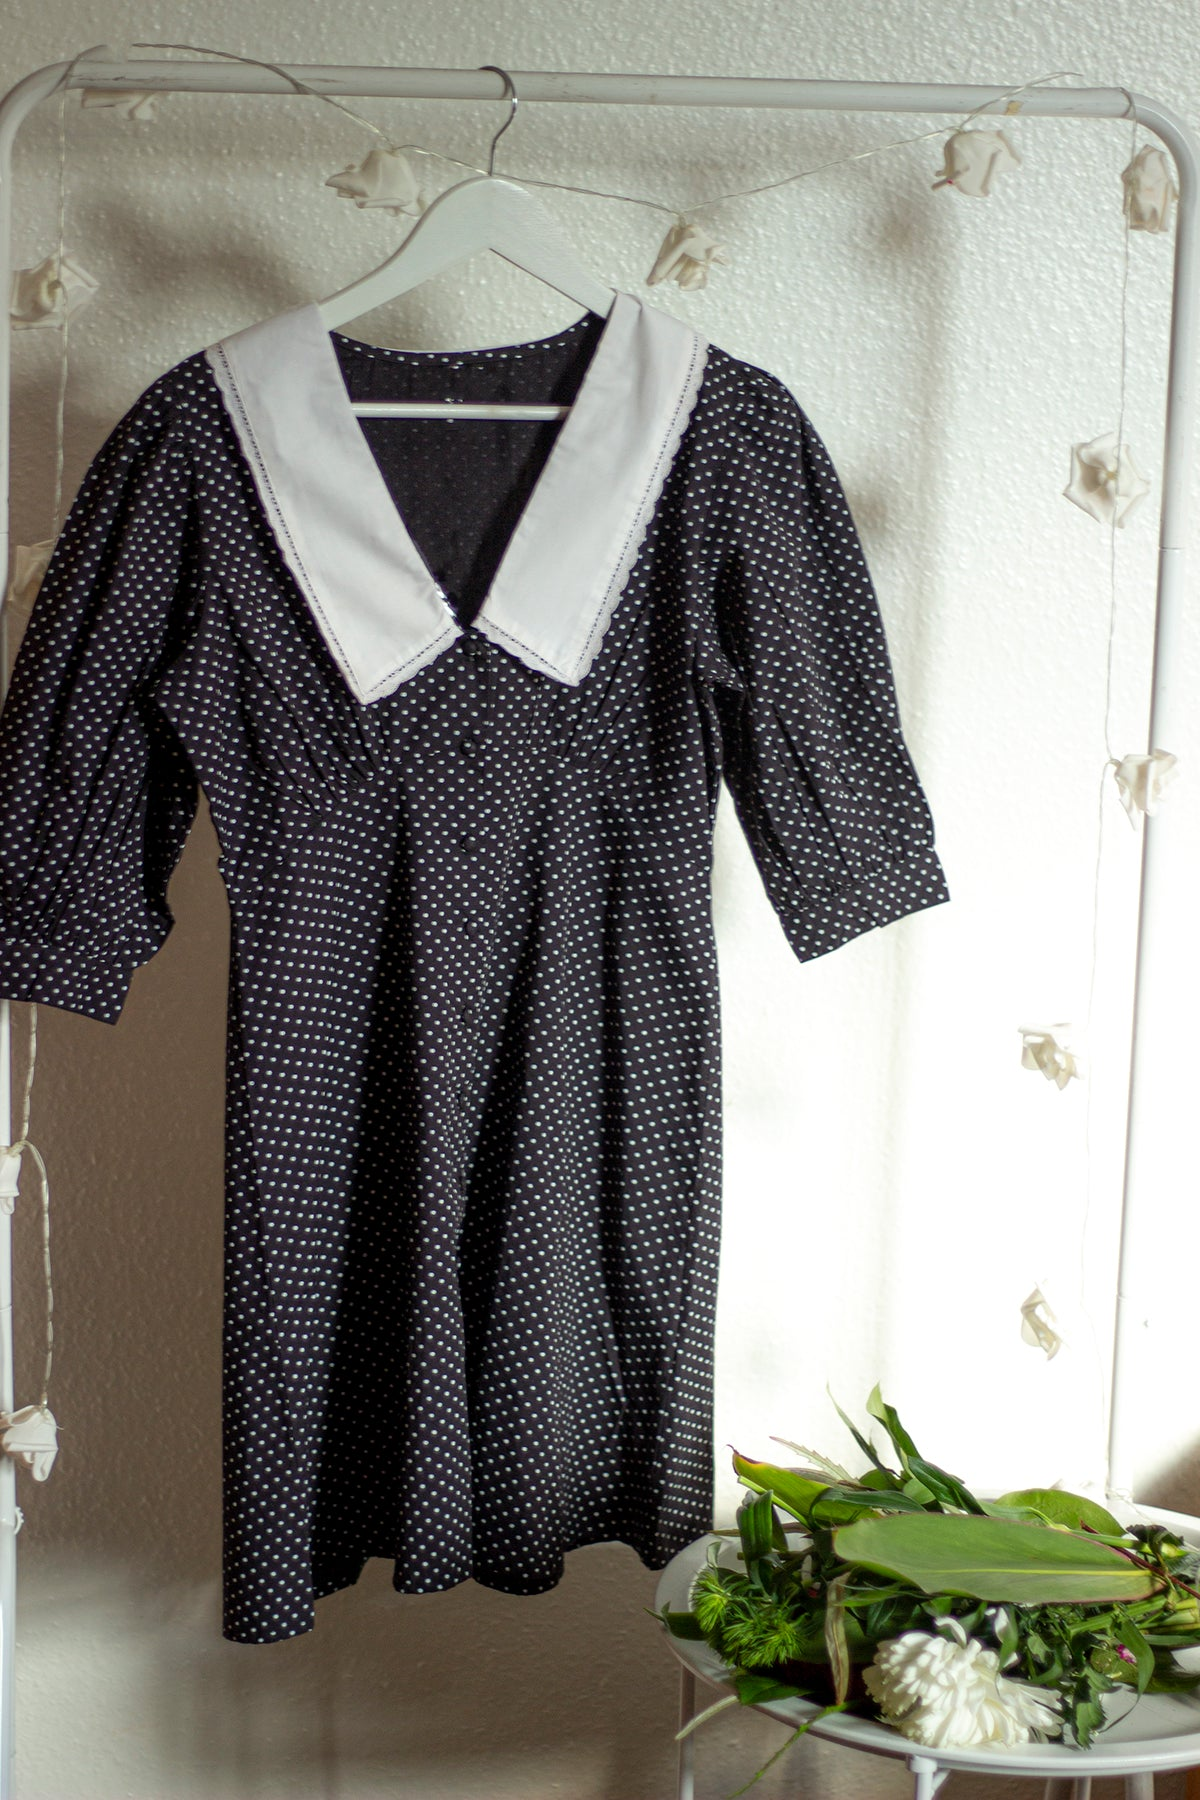 Peter Pan Collar Polka Dot Mini Dress - Sugar + Style